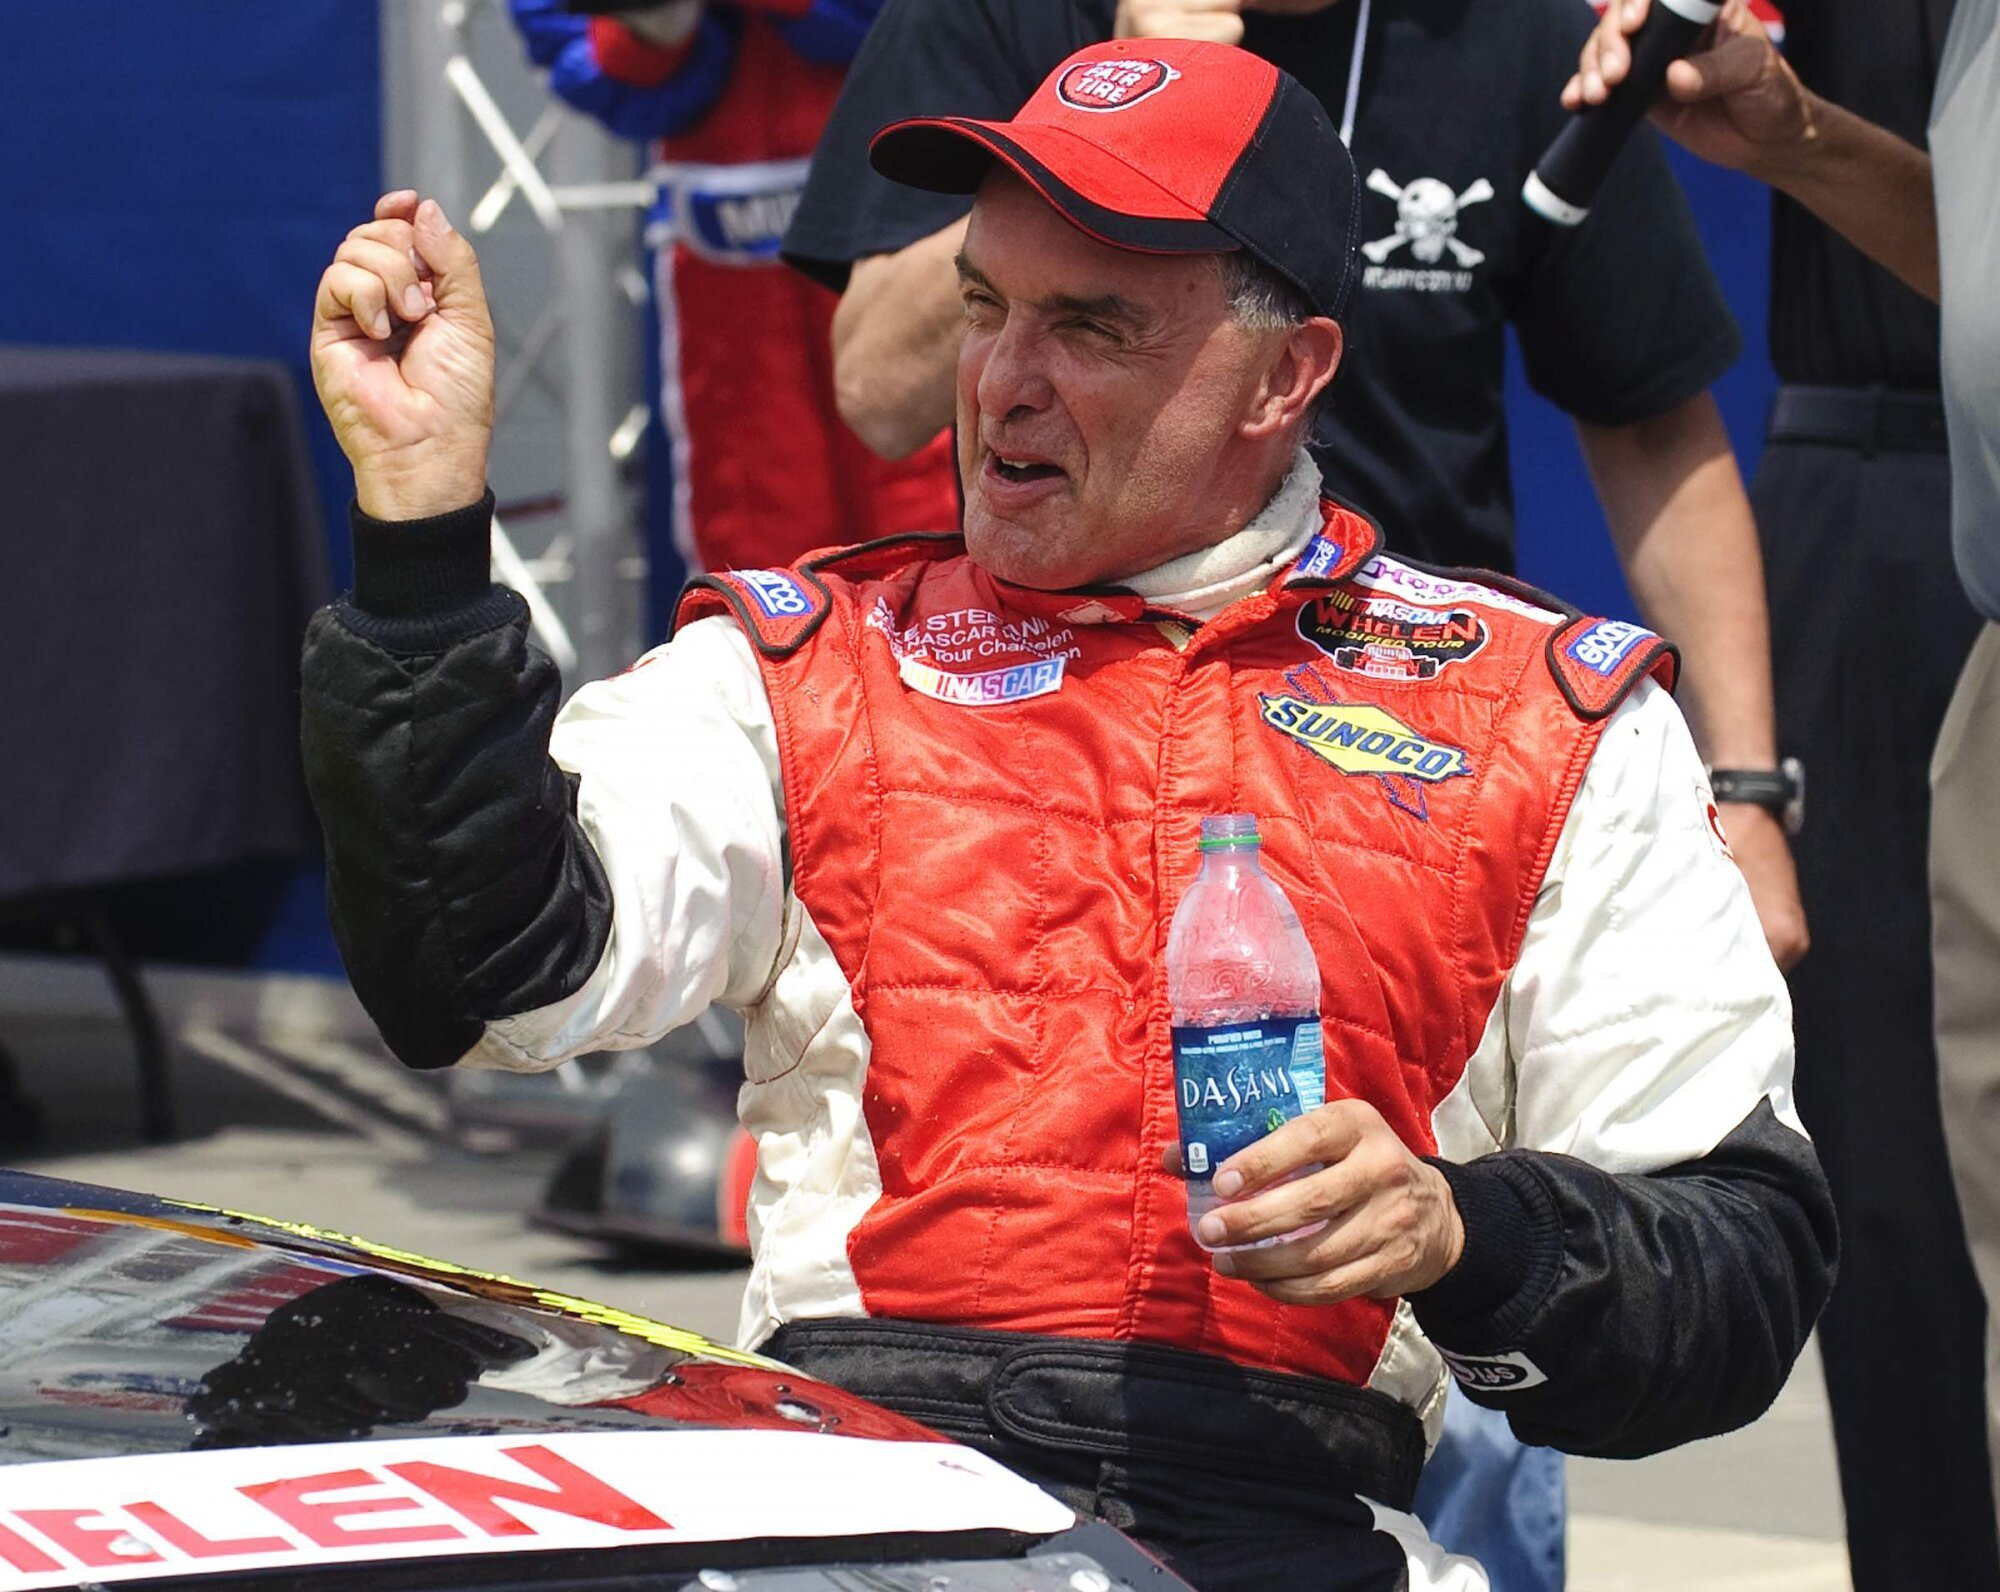 Mike Stefanik Was Pissed off after Battle at the Beach Finish